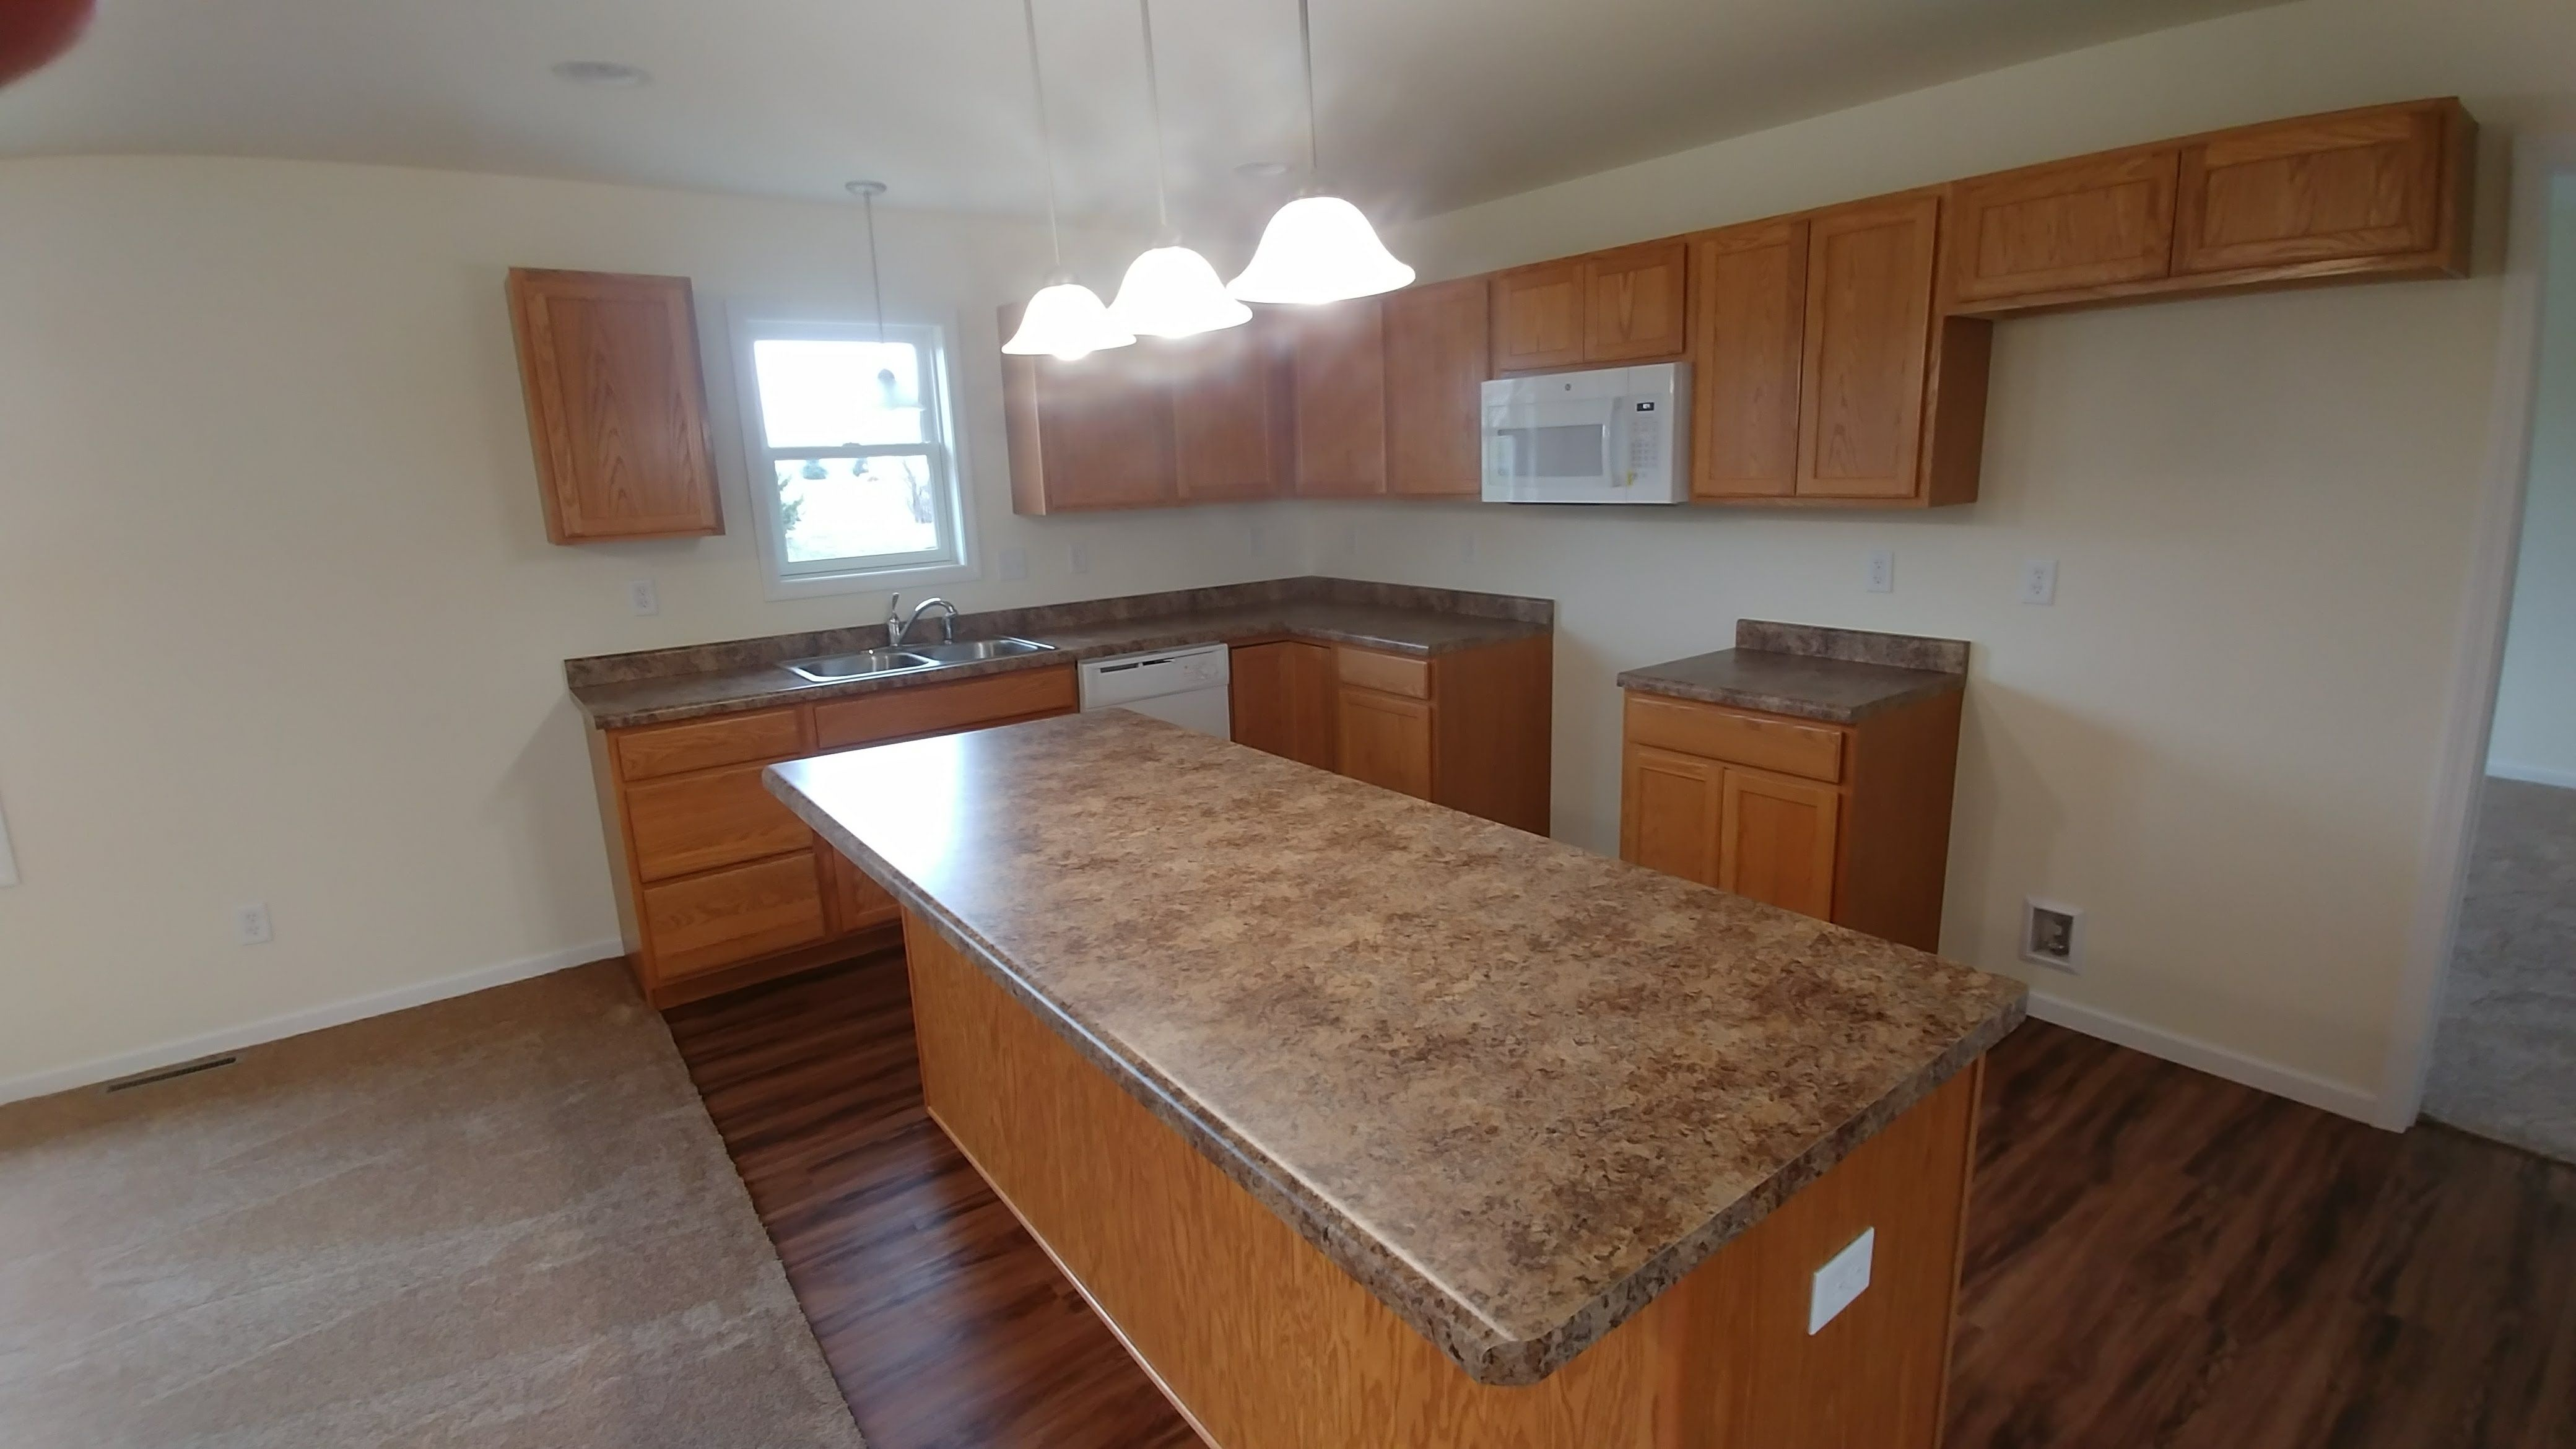 Kitchen featured in the Cheyenne By Accent Homes Inc. in Gary, IN